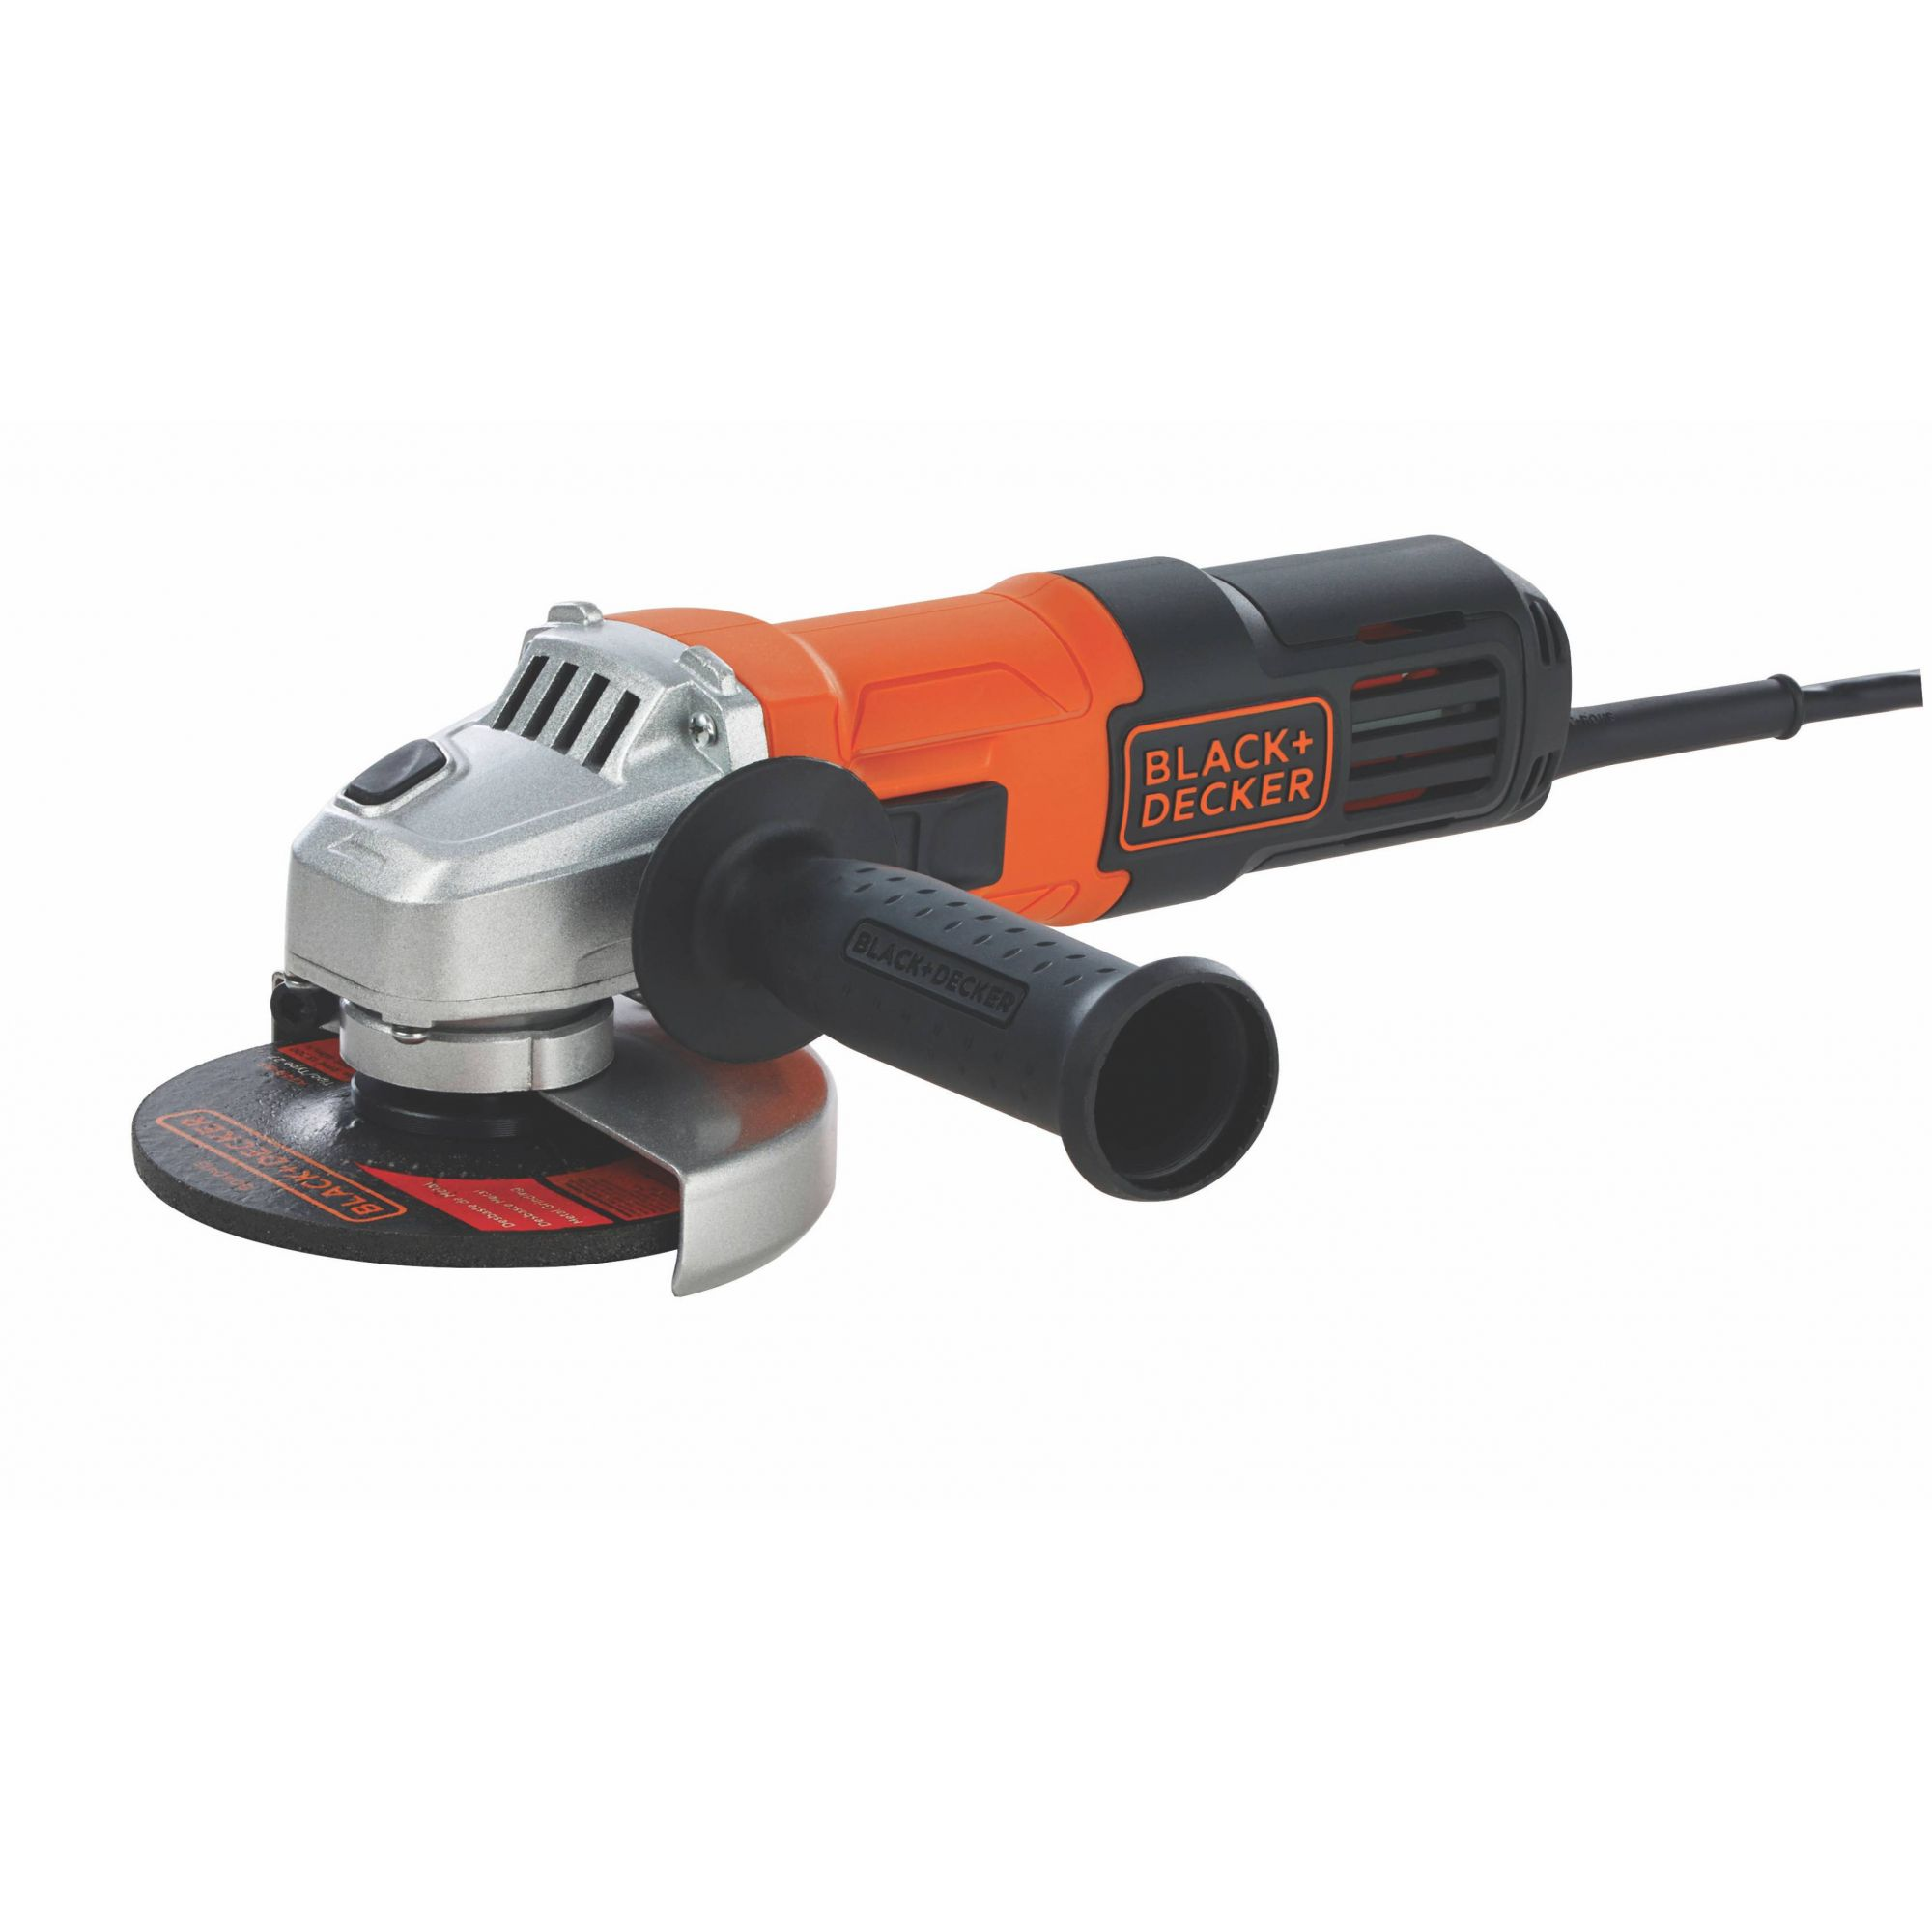 "ESMERILHADEIRA ANGULAR 4 1/2"" 650W BLACK AND DECKER G650"